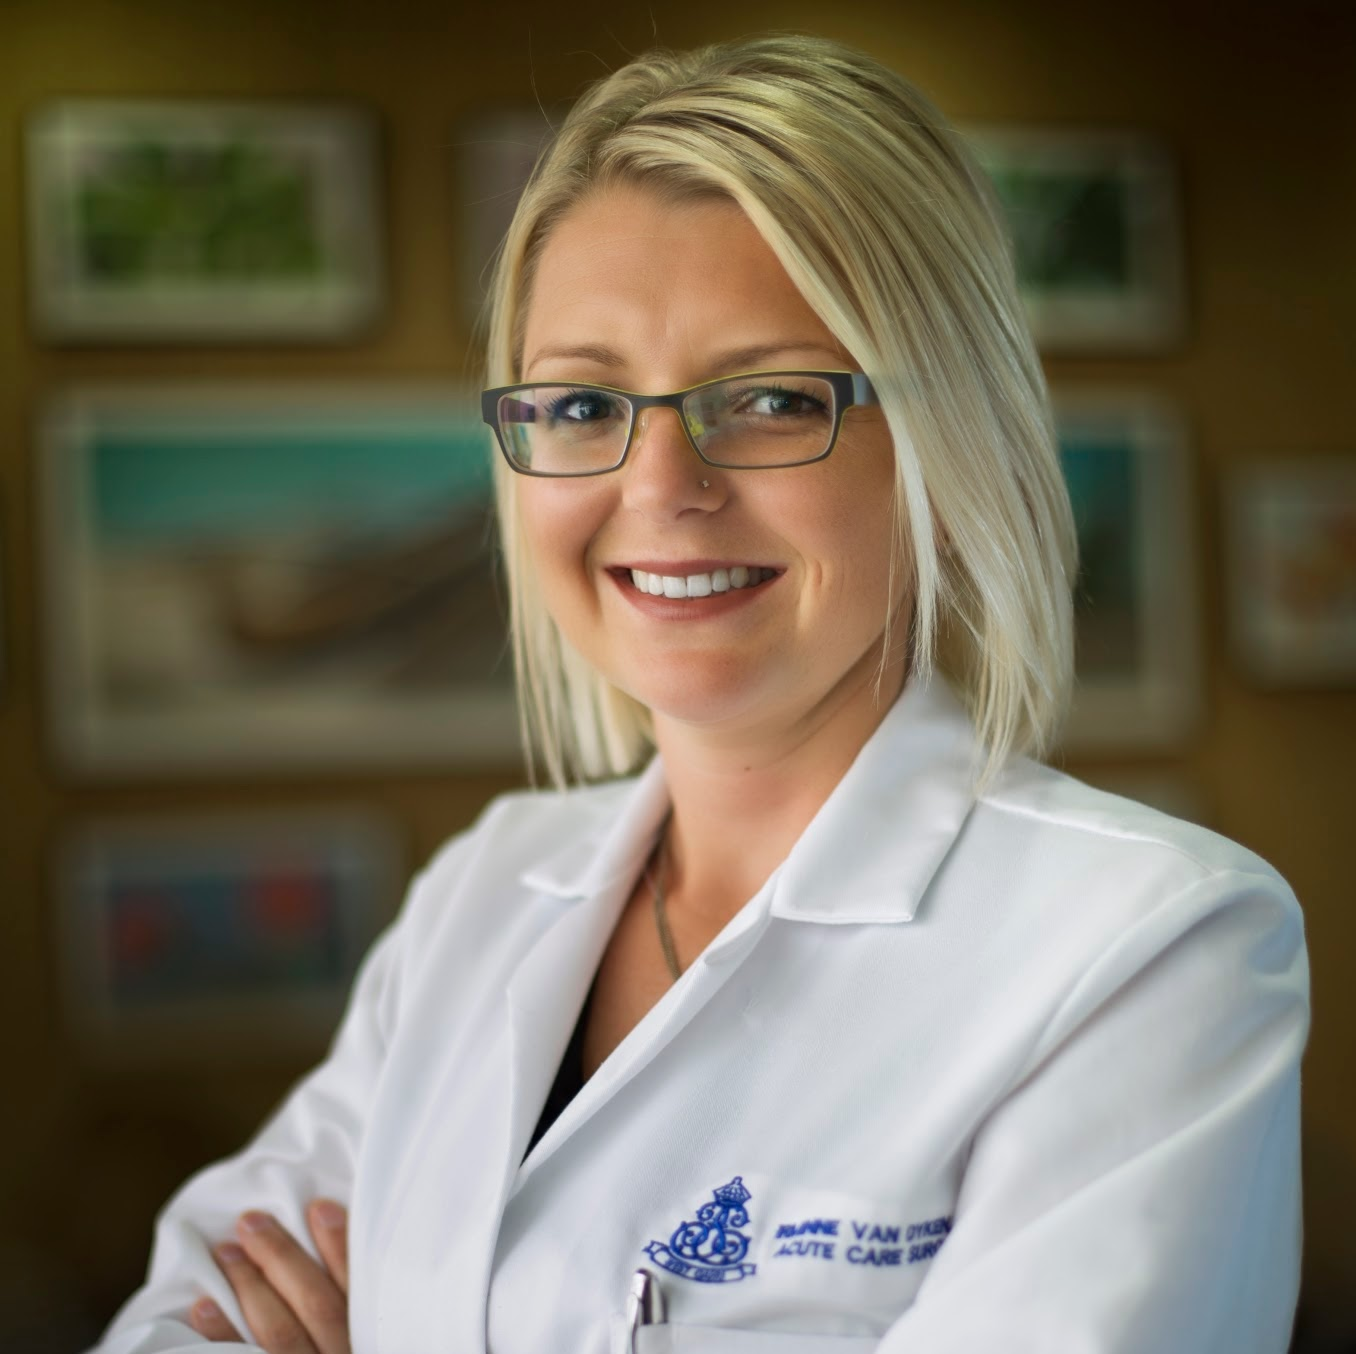 Irminne Van Dyken, MD -    Surgeon, The Queens Medical Center